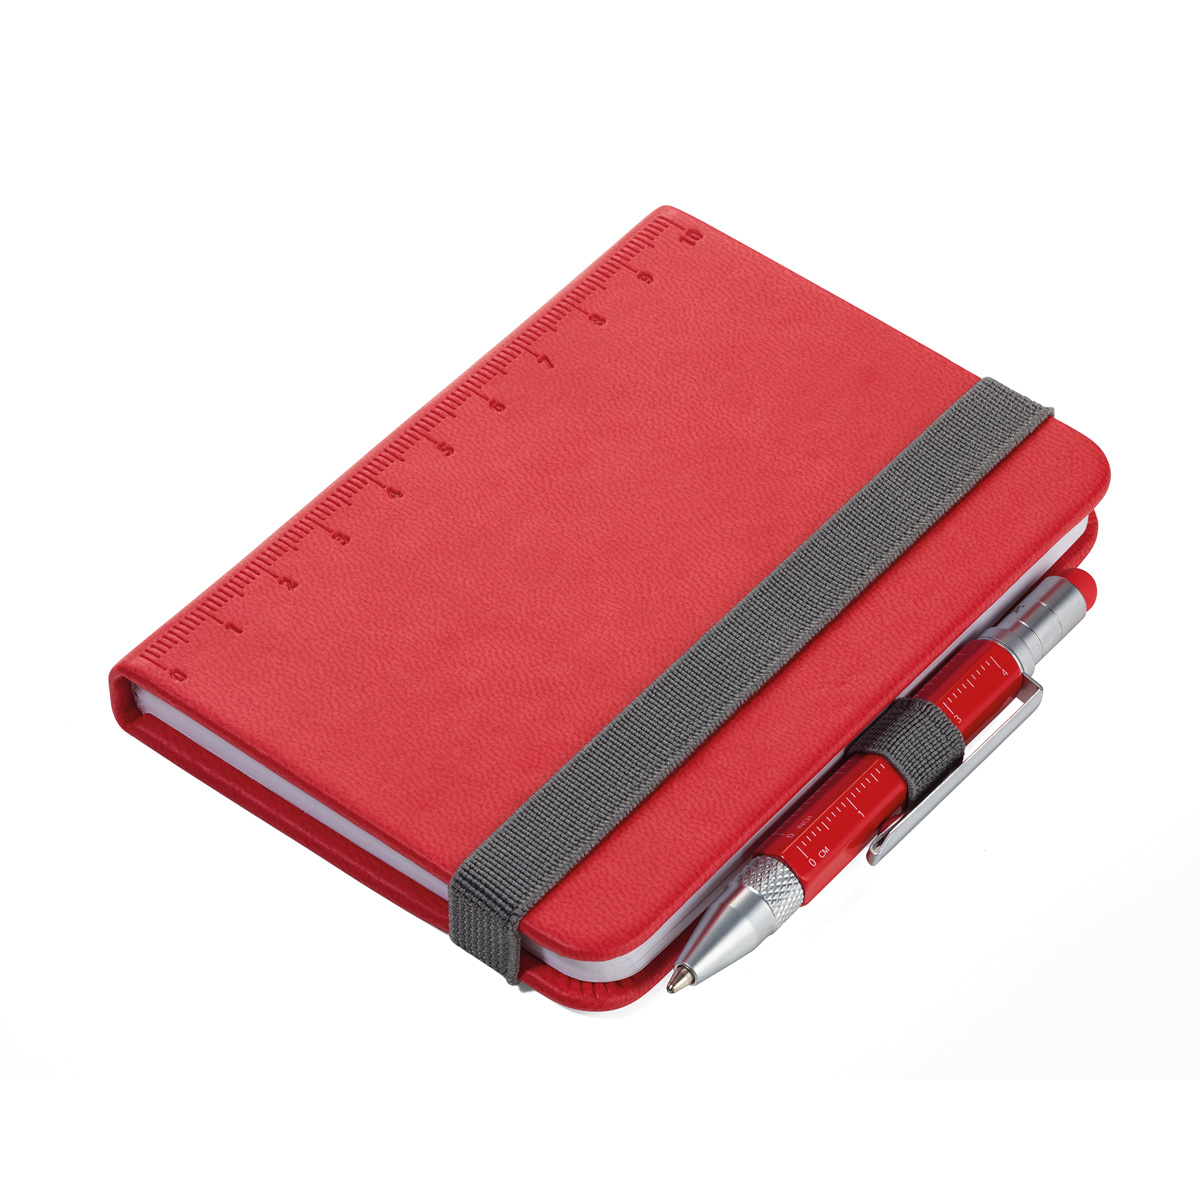 Troika Lilipad and Liliput Mini Notebook and Pen Red